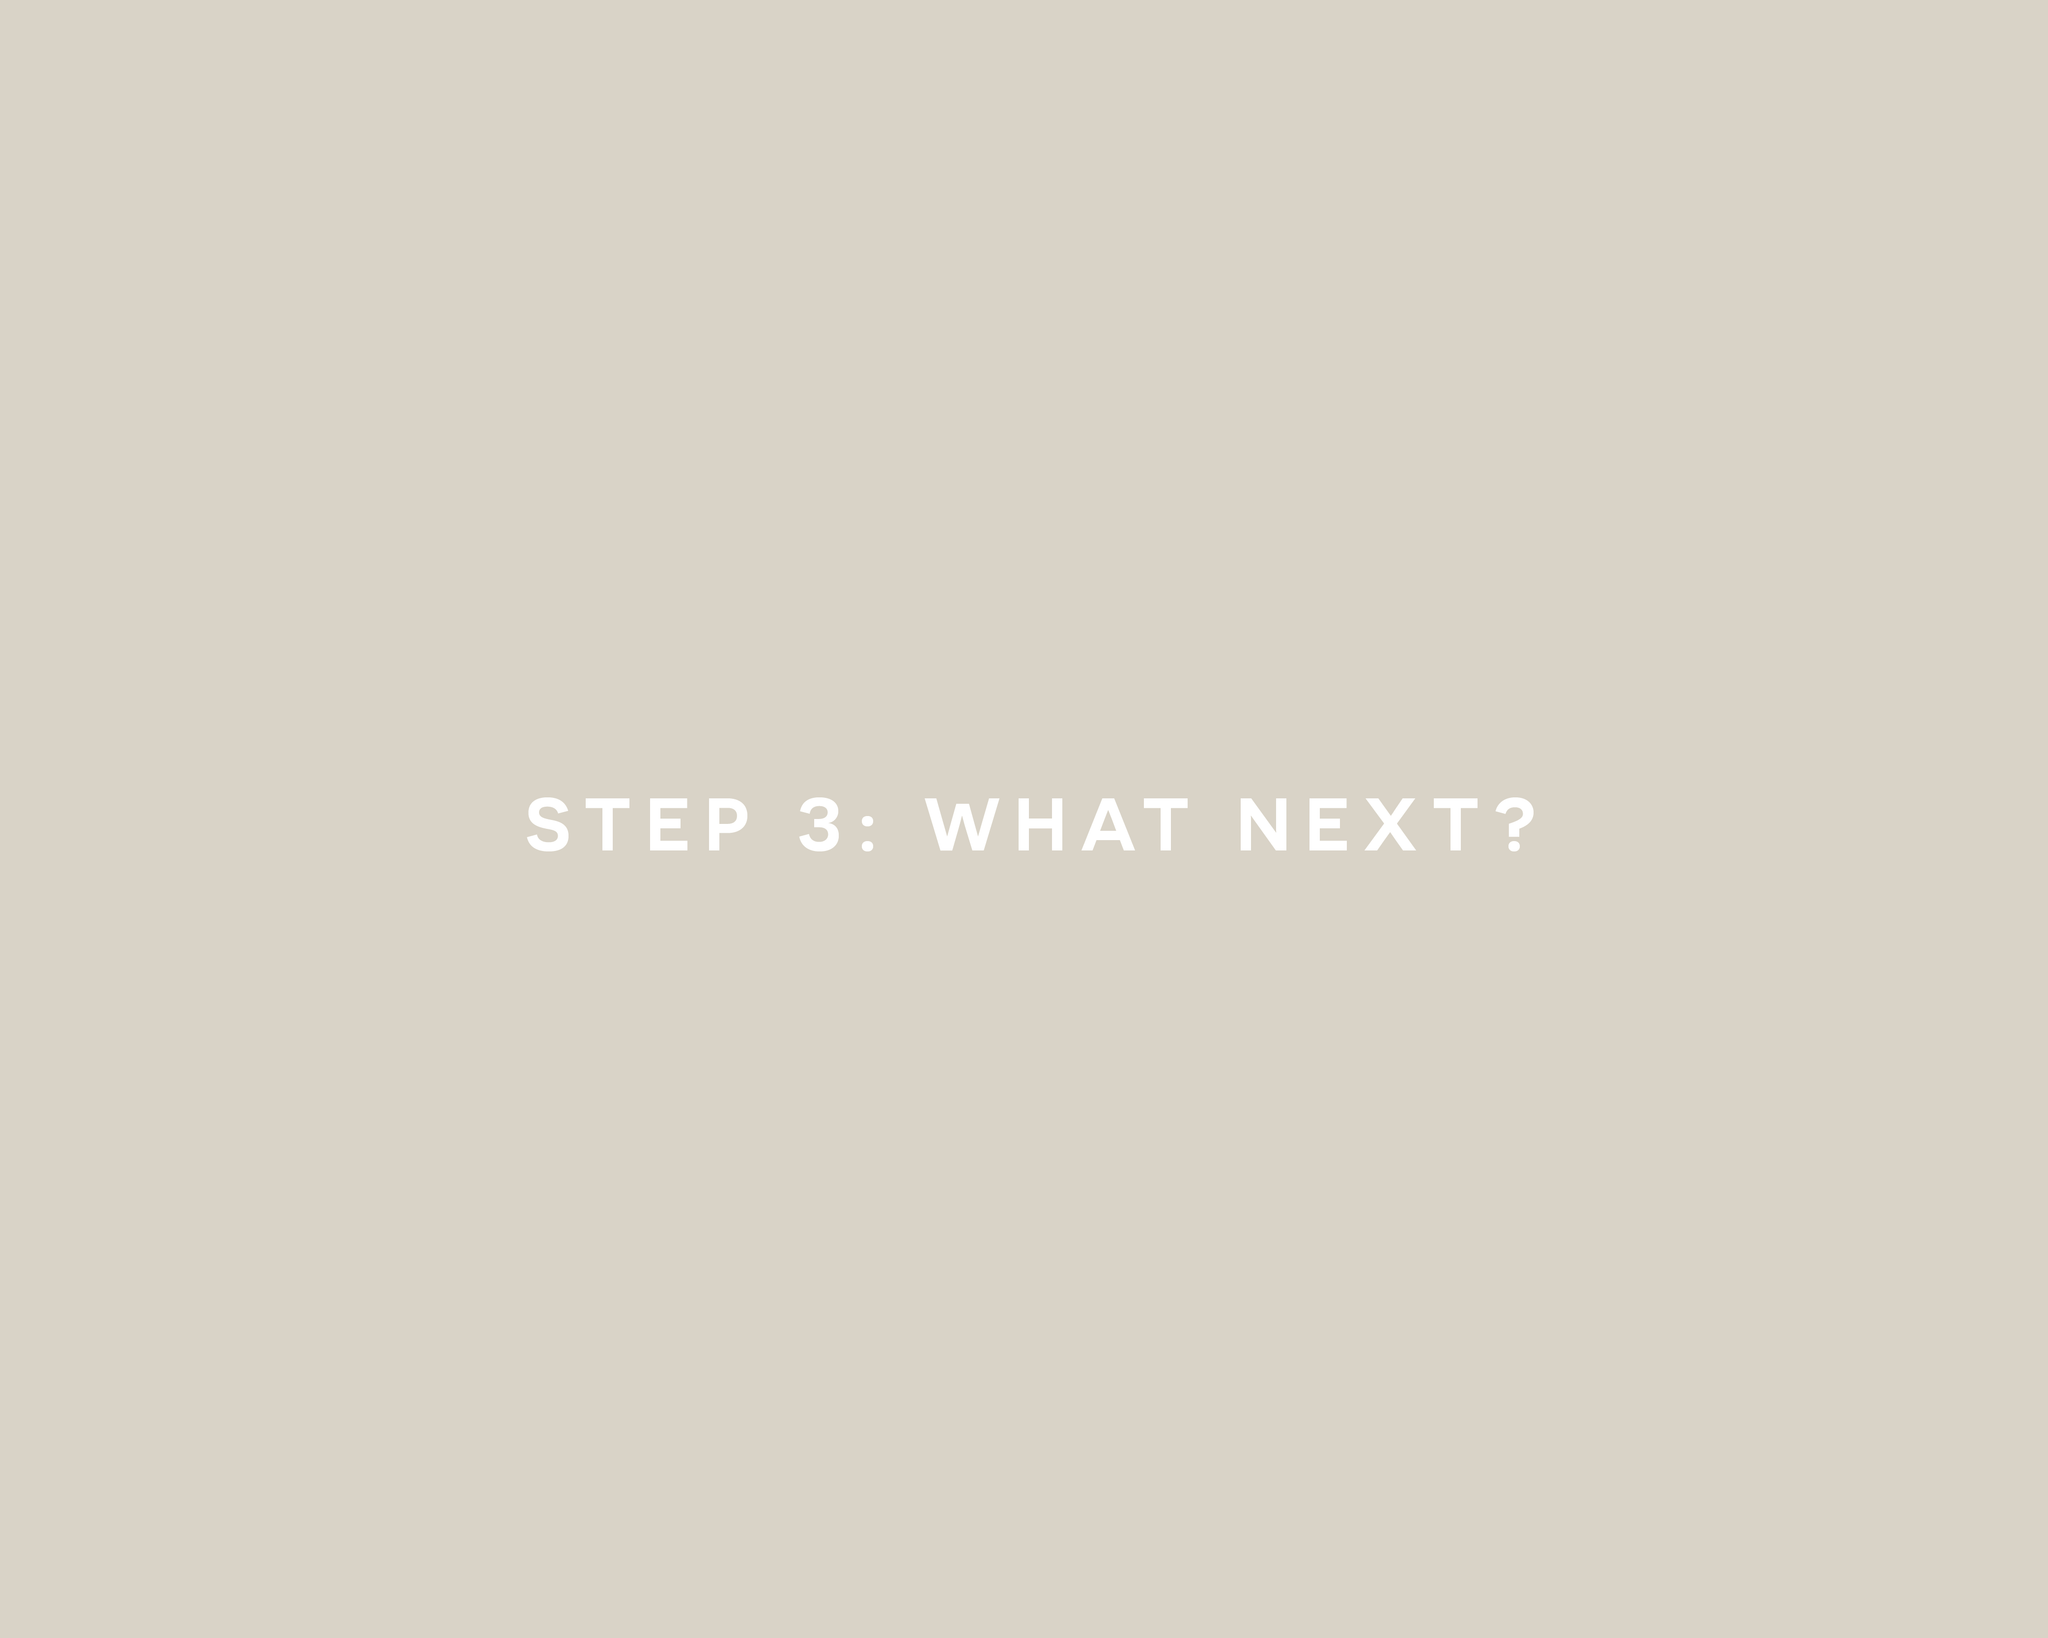 step 3: what next